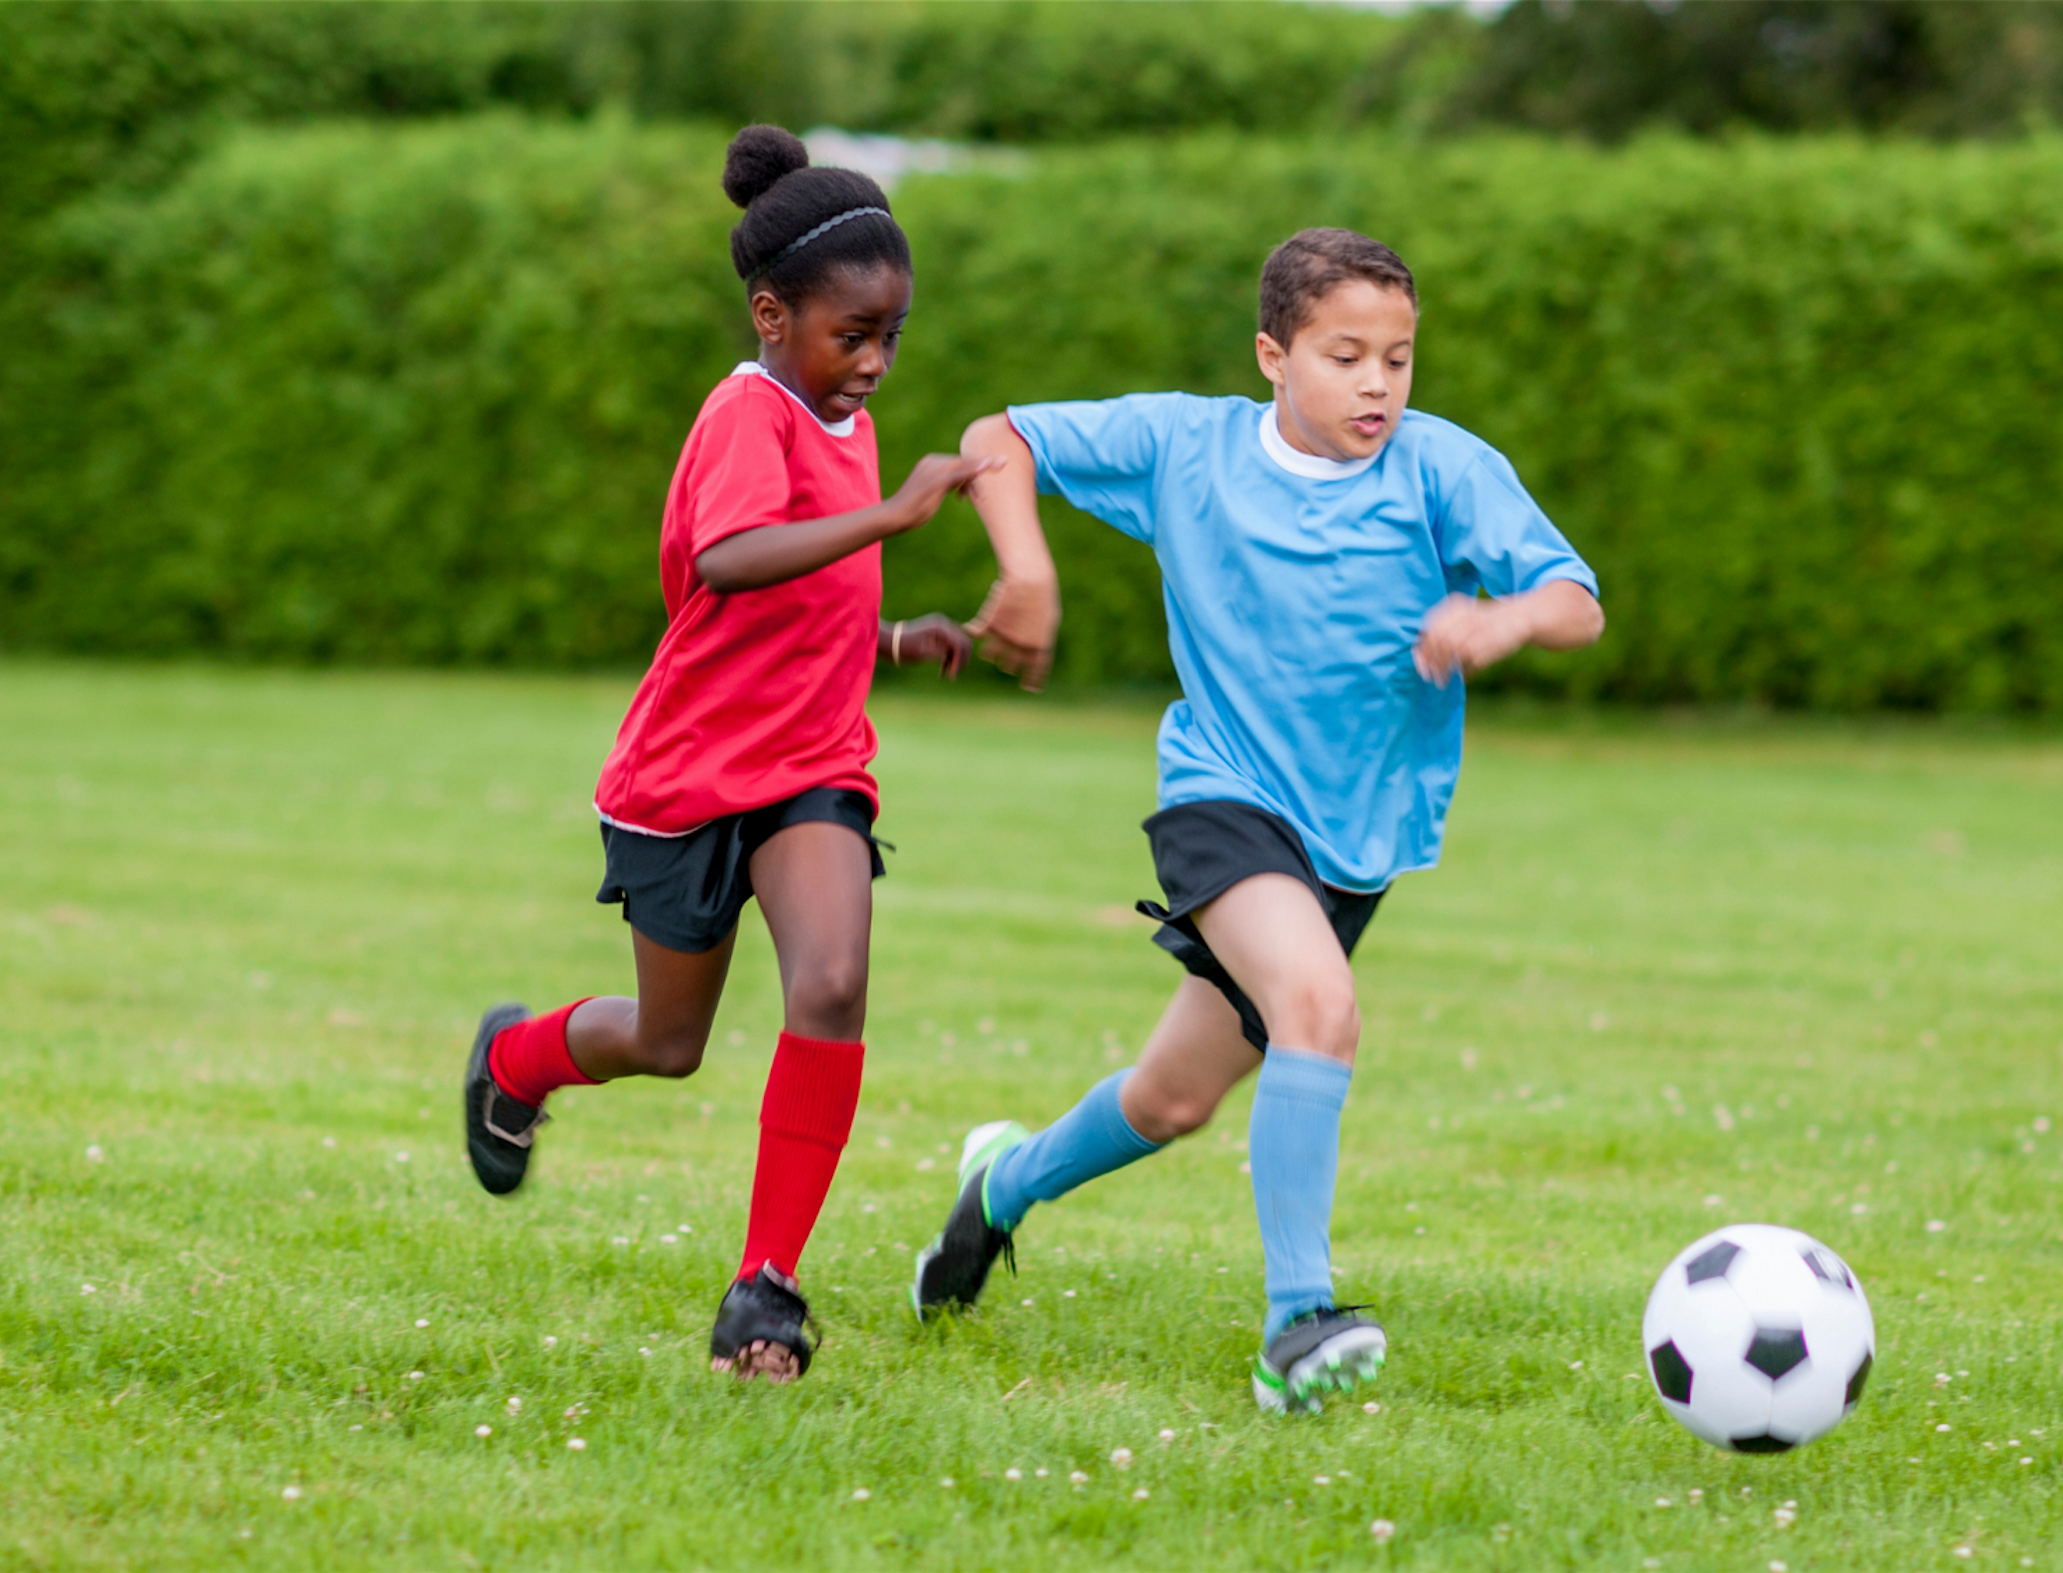 7 Ways to Support Your Child in Sports